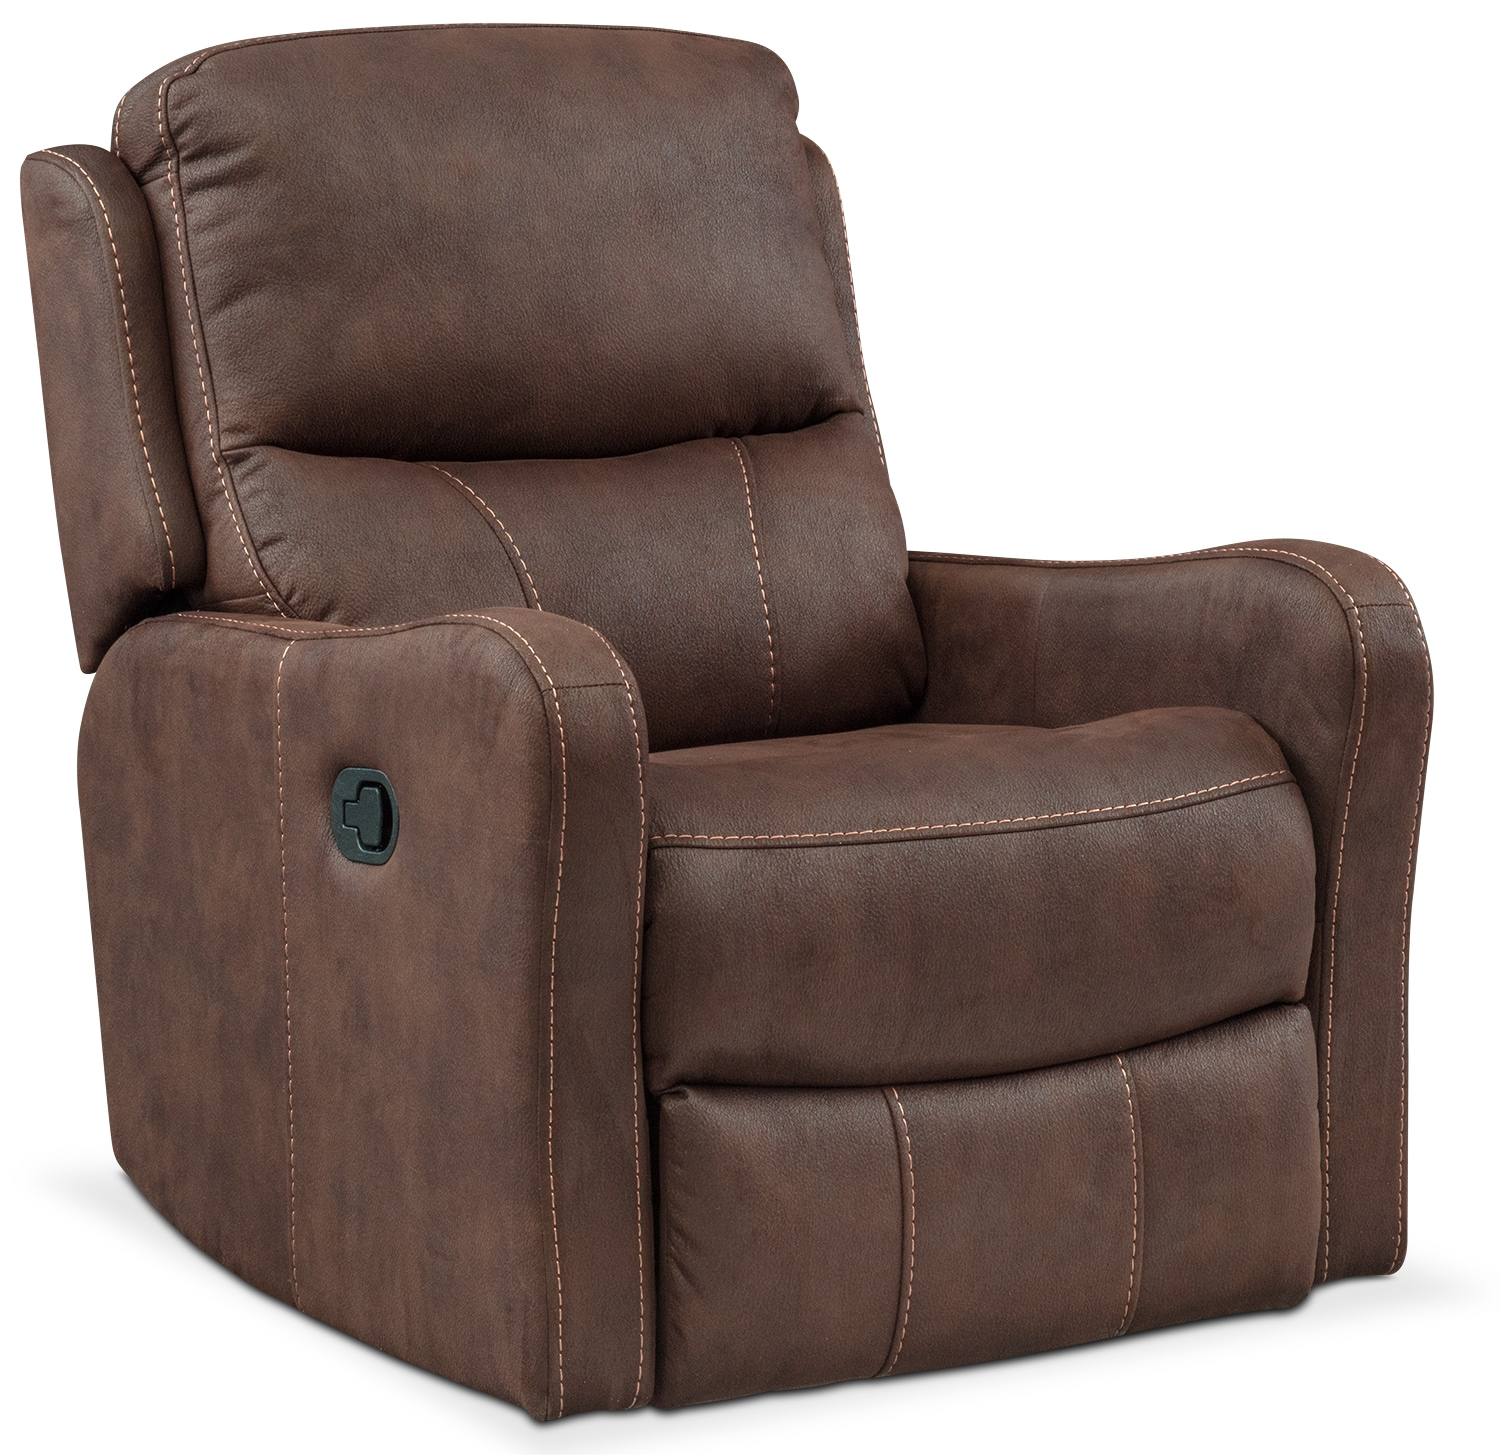 Living Room Furniture - Cabo Glider Recliner